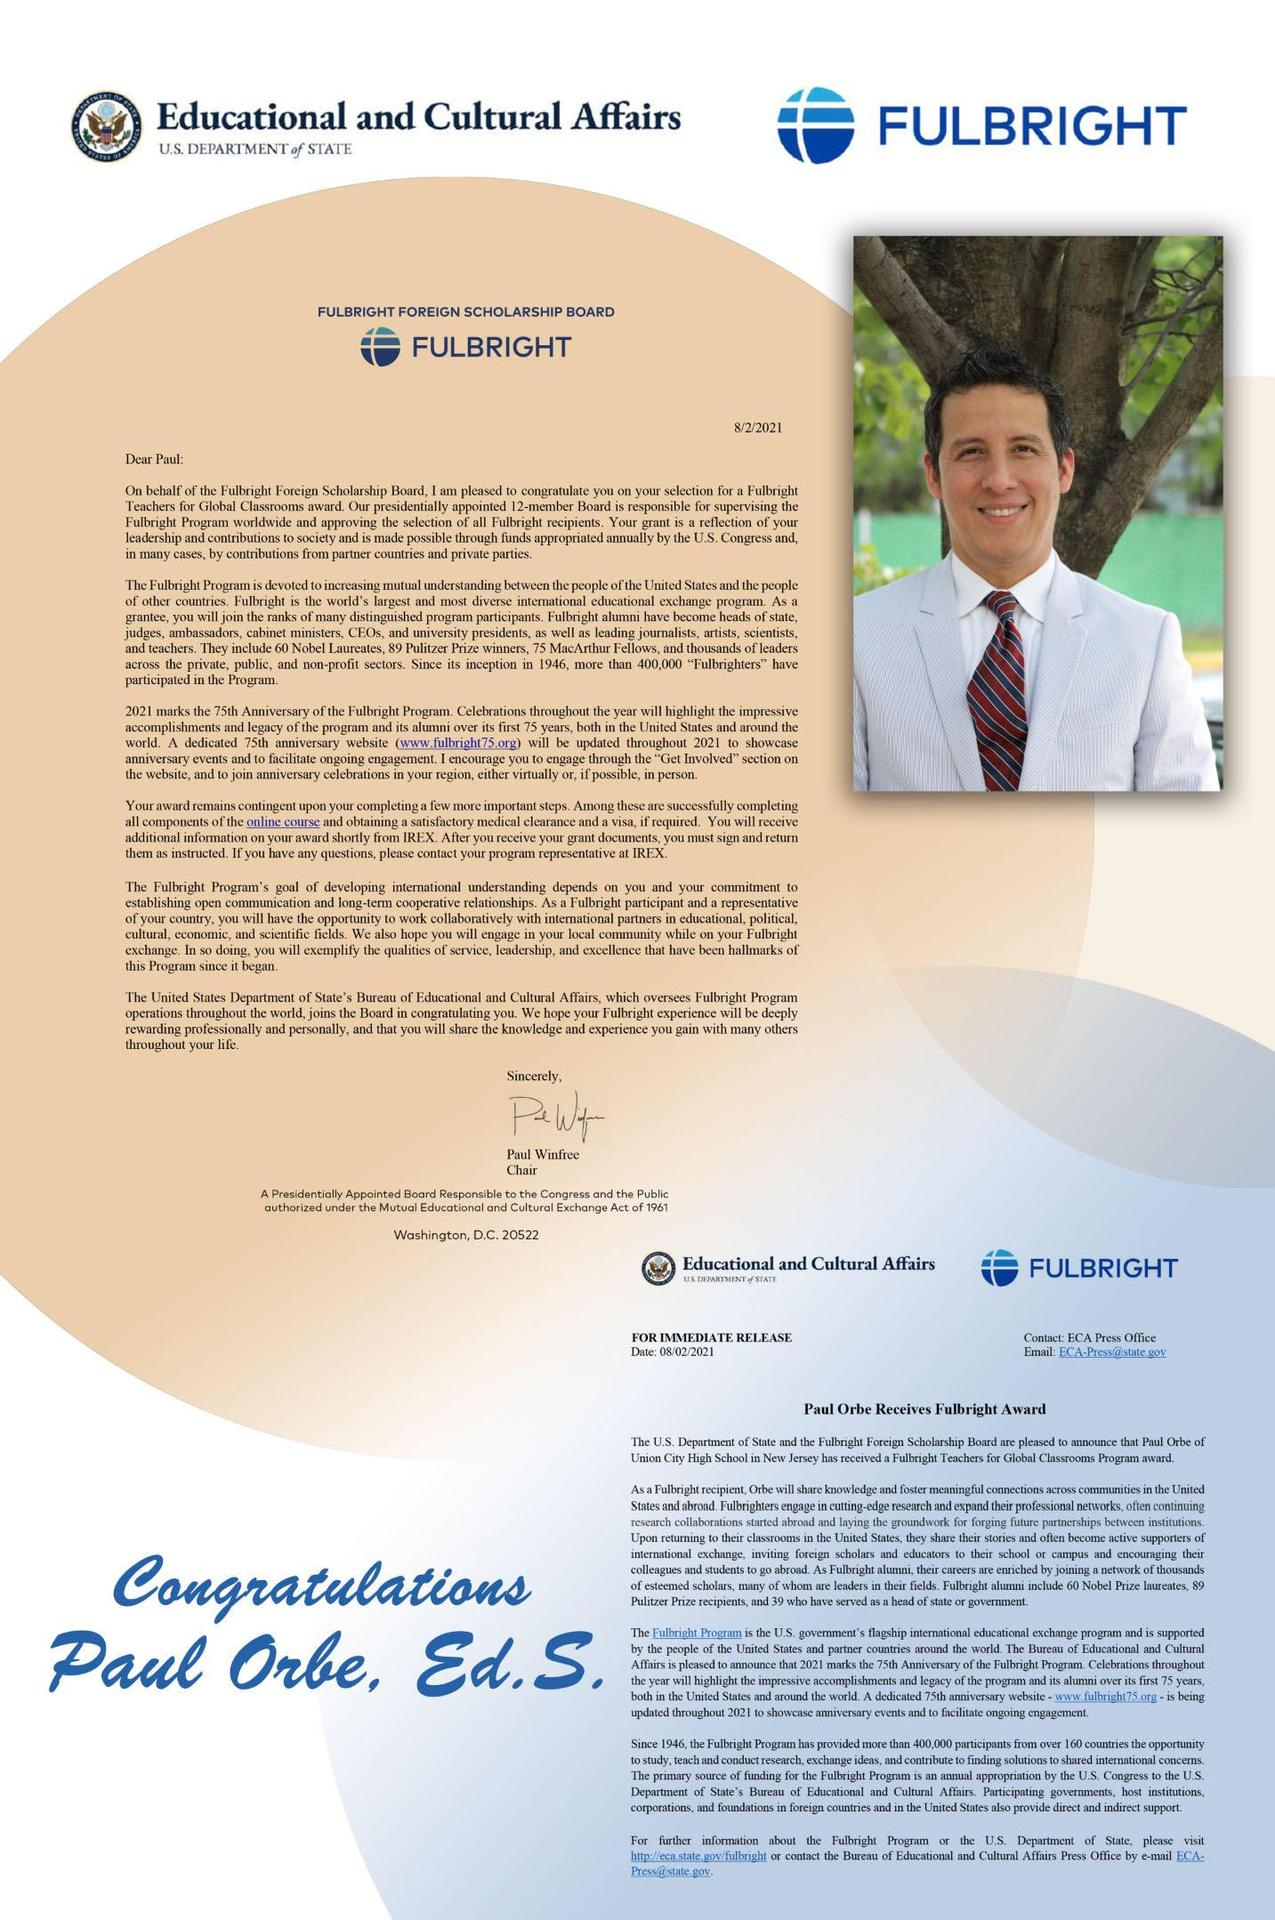 Fulbright letter collage